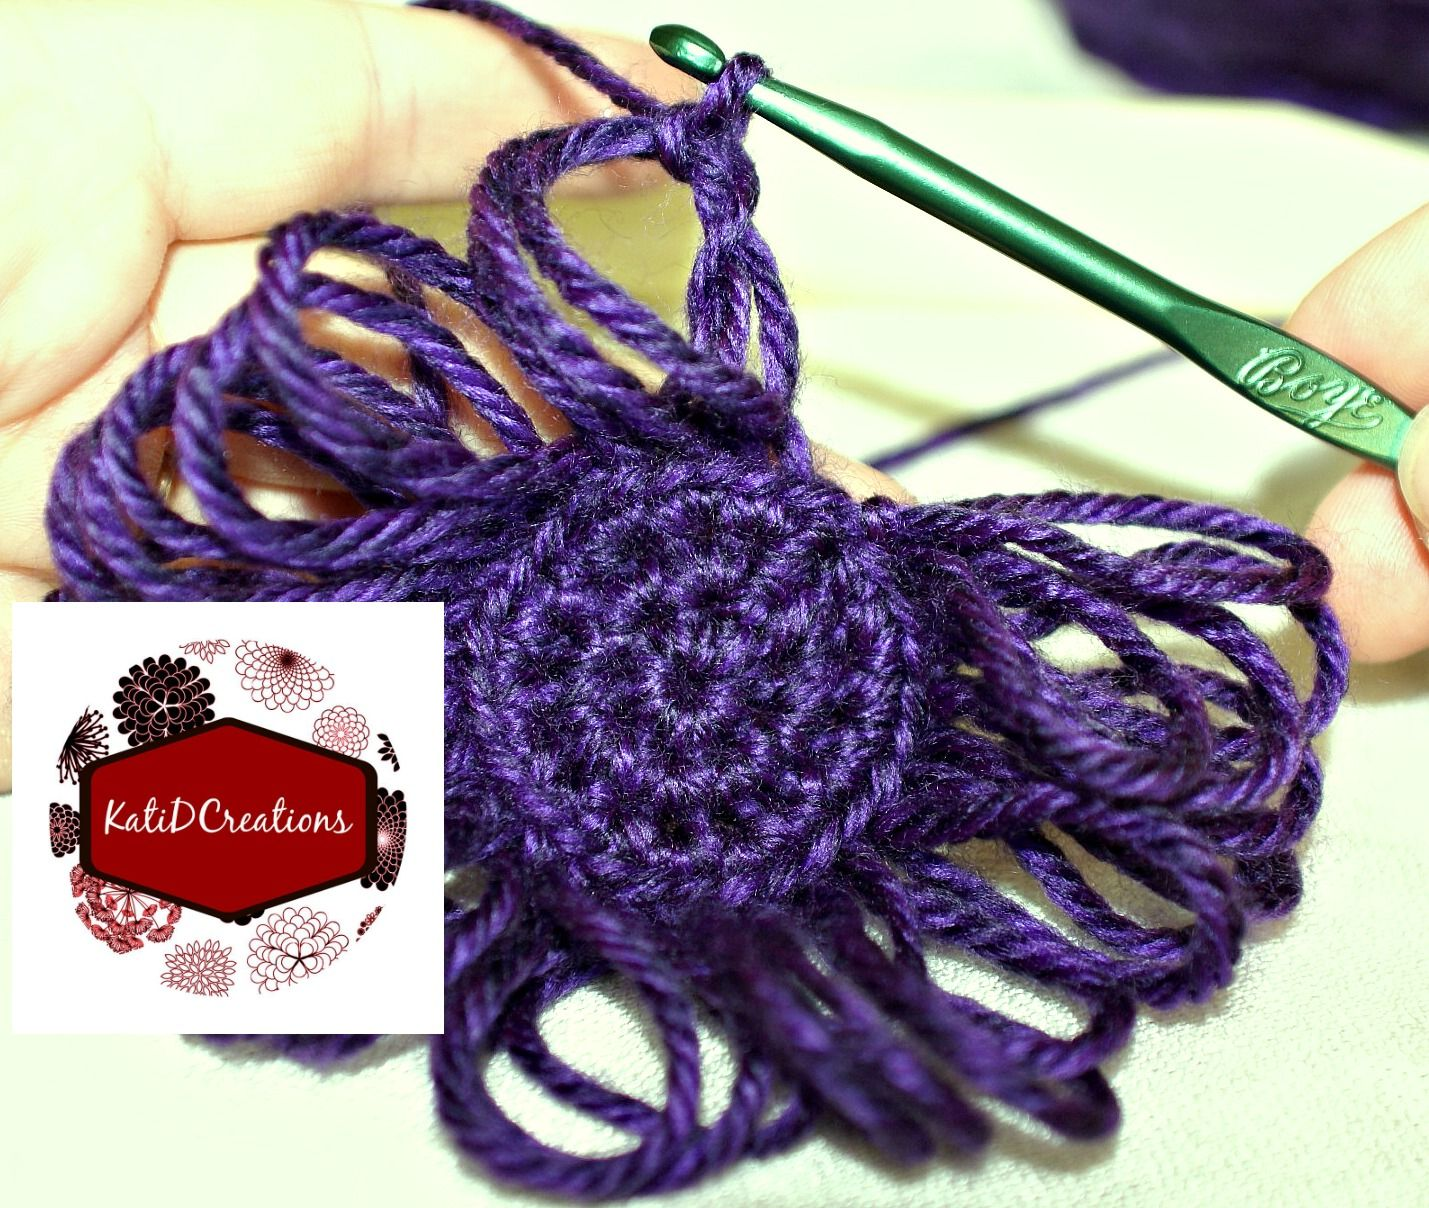 Broomstick Lace Tutorial - crocheting broomstick lace in the round ...